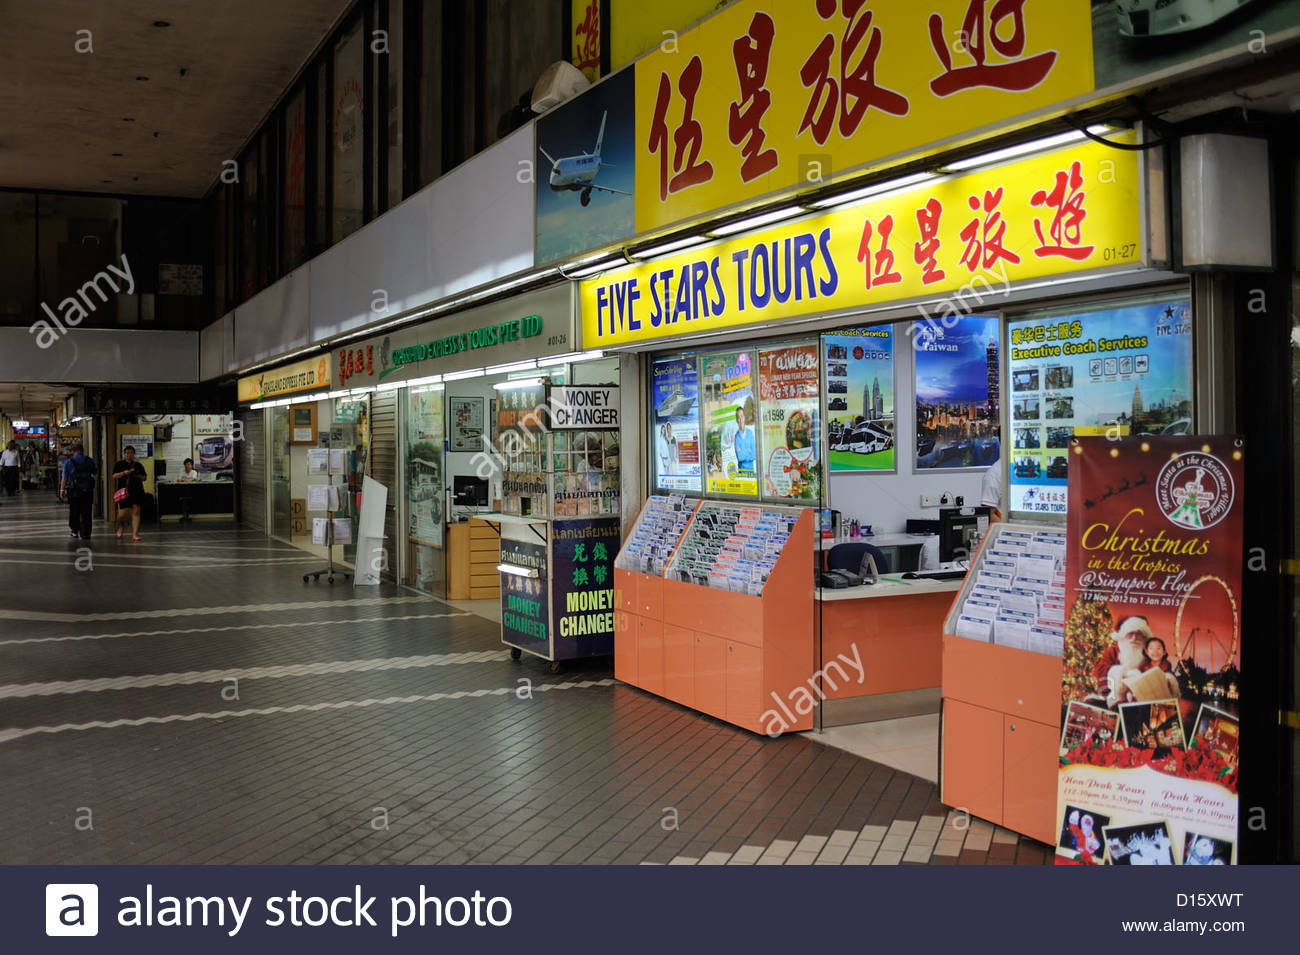 Singapore - Golden Mile Concourse with tour companies operating buses to Kuala Lumpur. - Stock Image